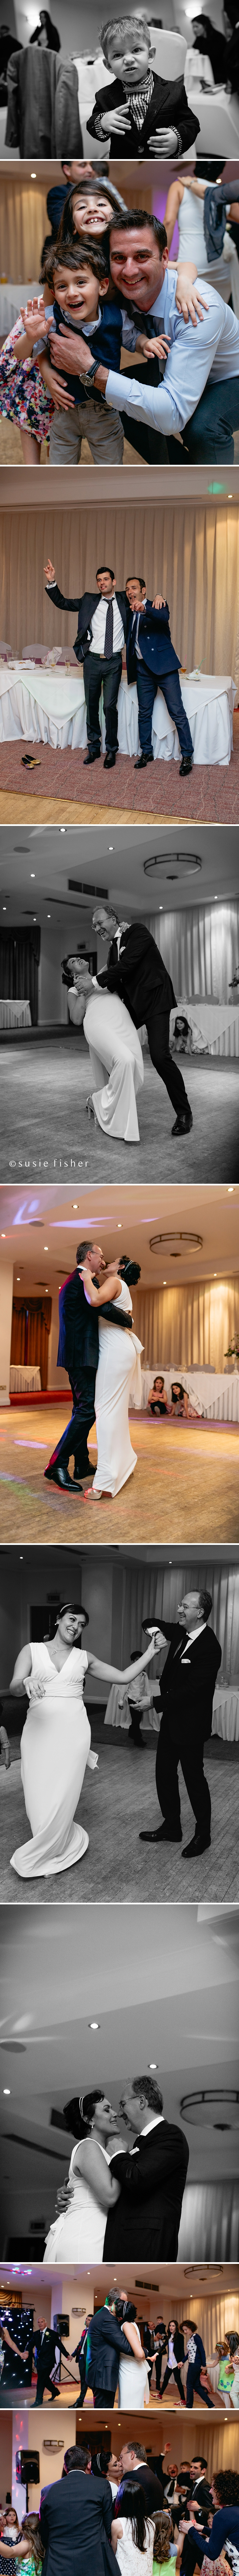 Surrey Wedding Photographer_Copyright Susie Fisher.jpg